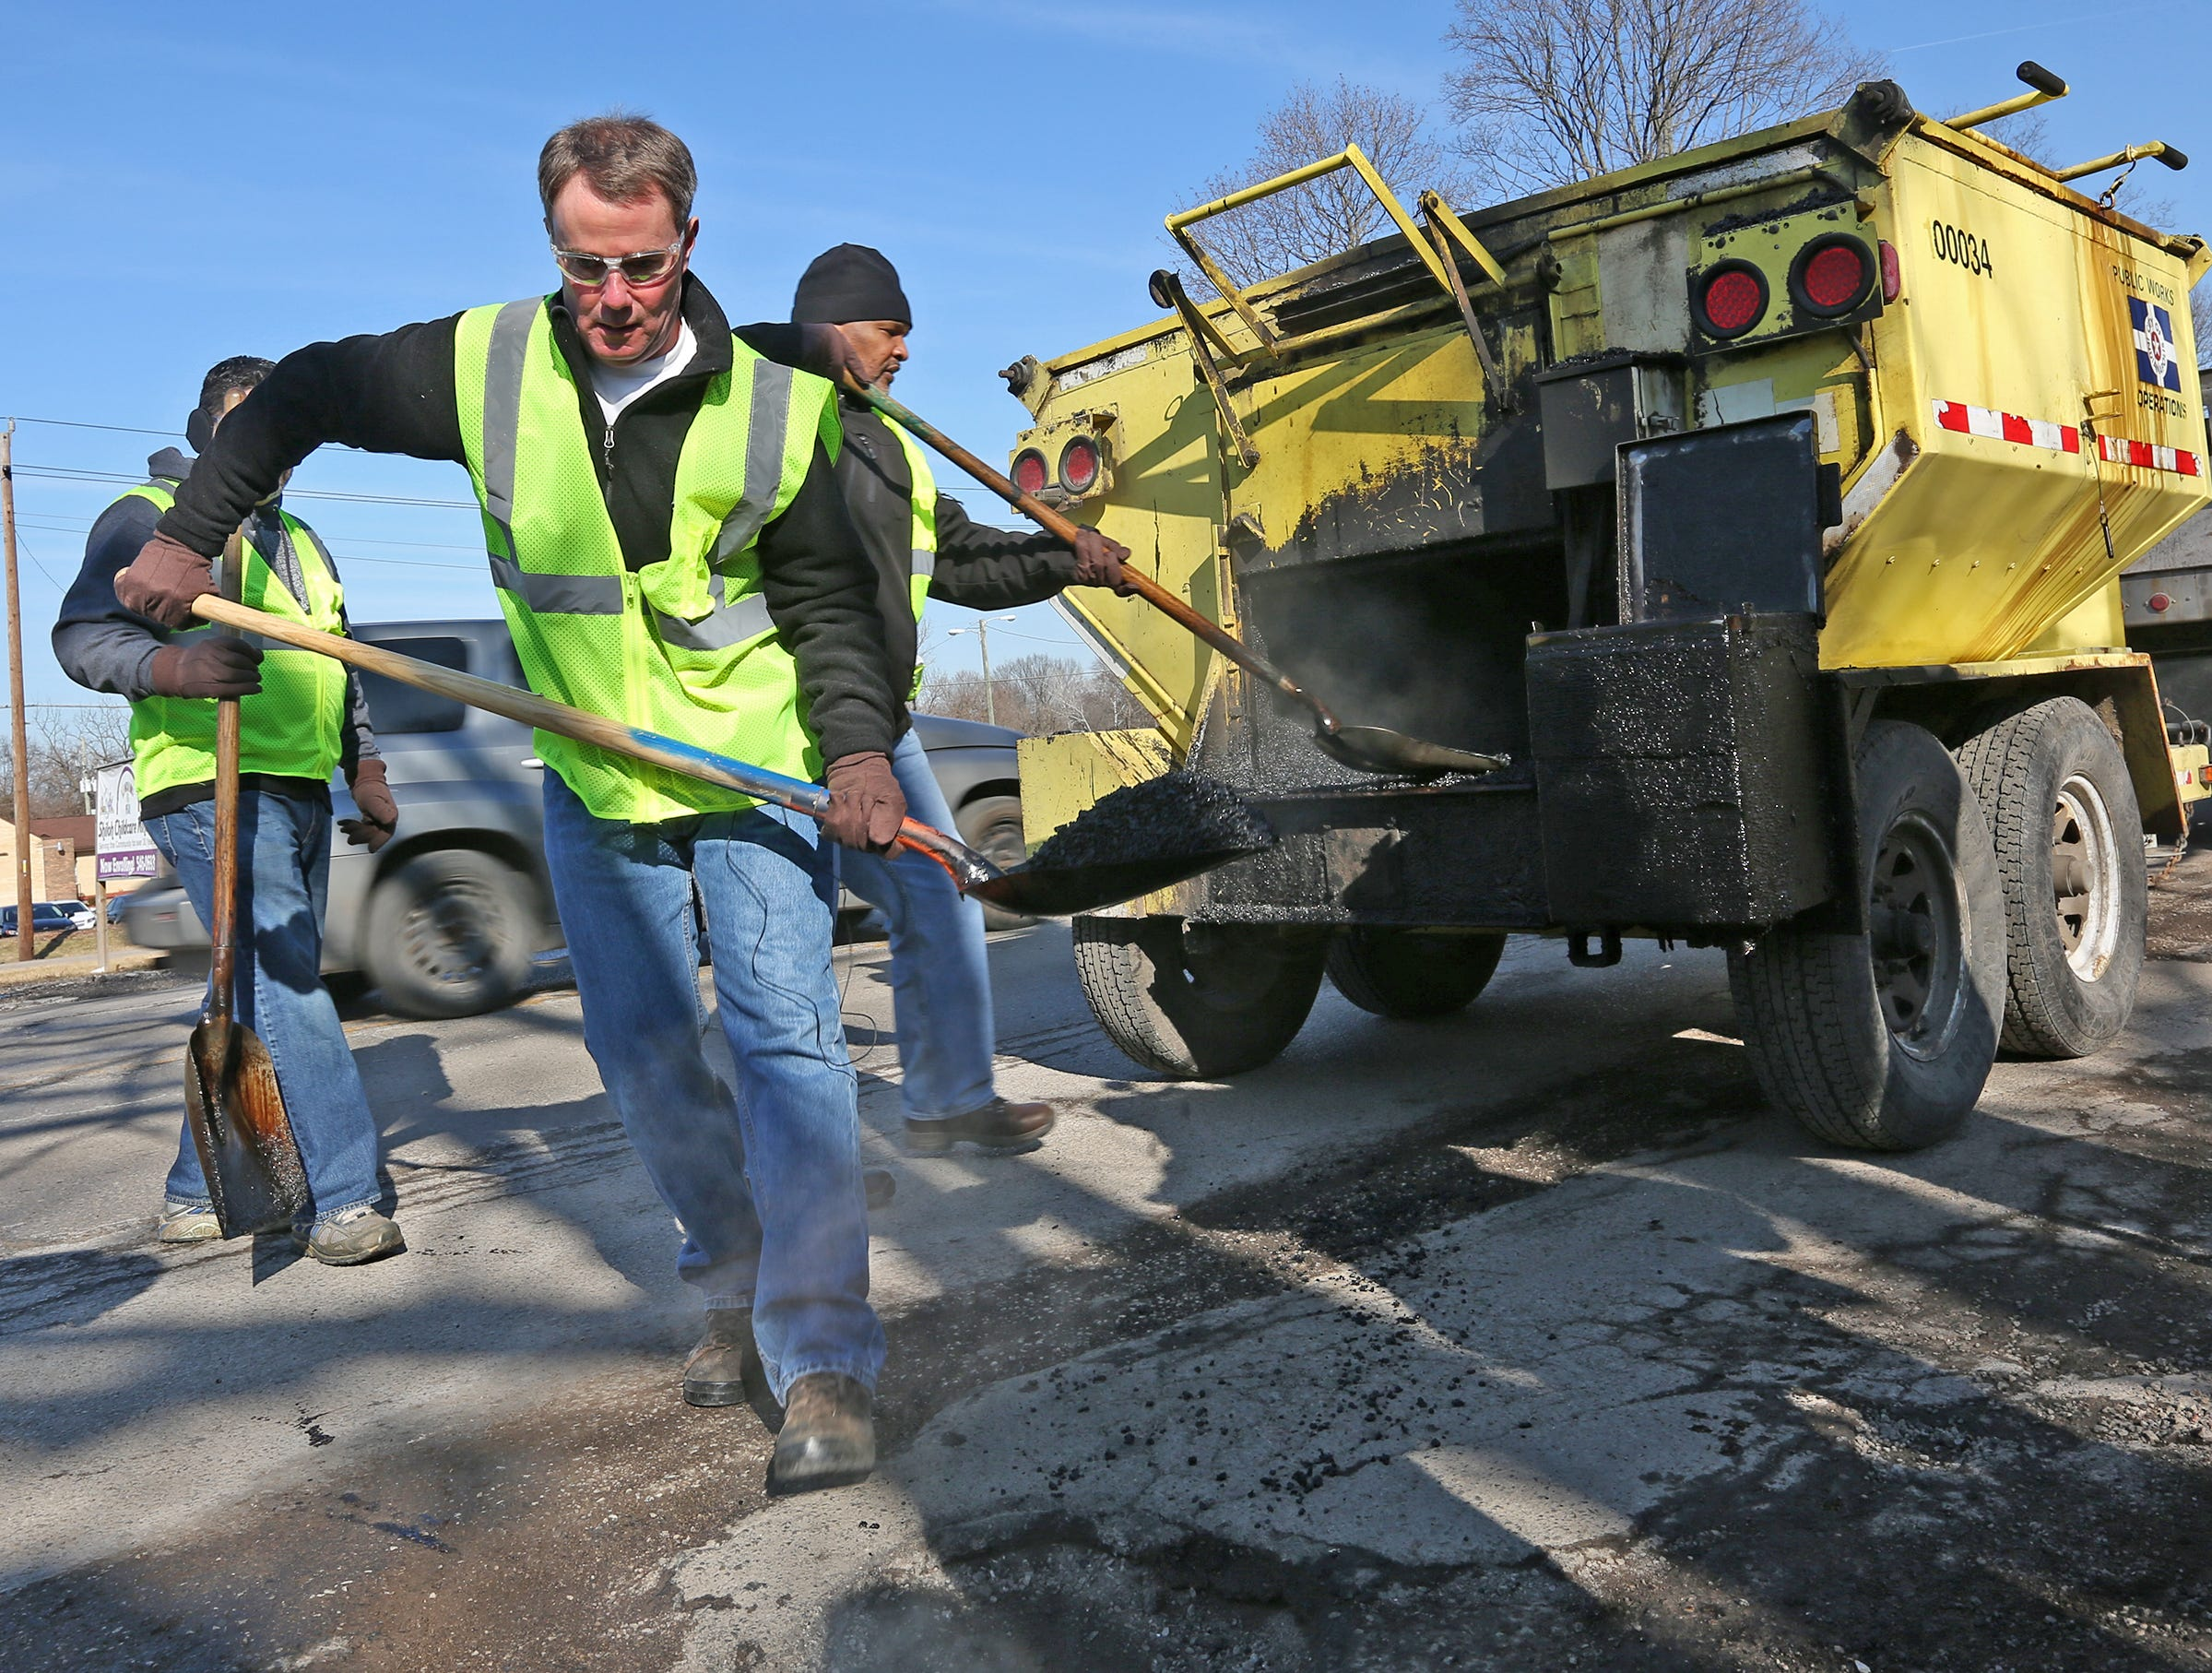 Mayor Joe Hogsett pitches in to fill pot holes on the first day of a 4-day pothole blitz, joining a crew from the Indianapolis Department of Public Works (DPW) near the intersection of 38th St. and Forest Manor Ave., Monday, Jan. 30, 2018.  DPW crews are using hot mix, an asphalt mix that lasts longer and adheres better.